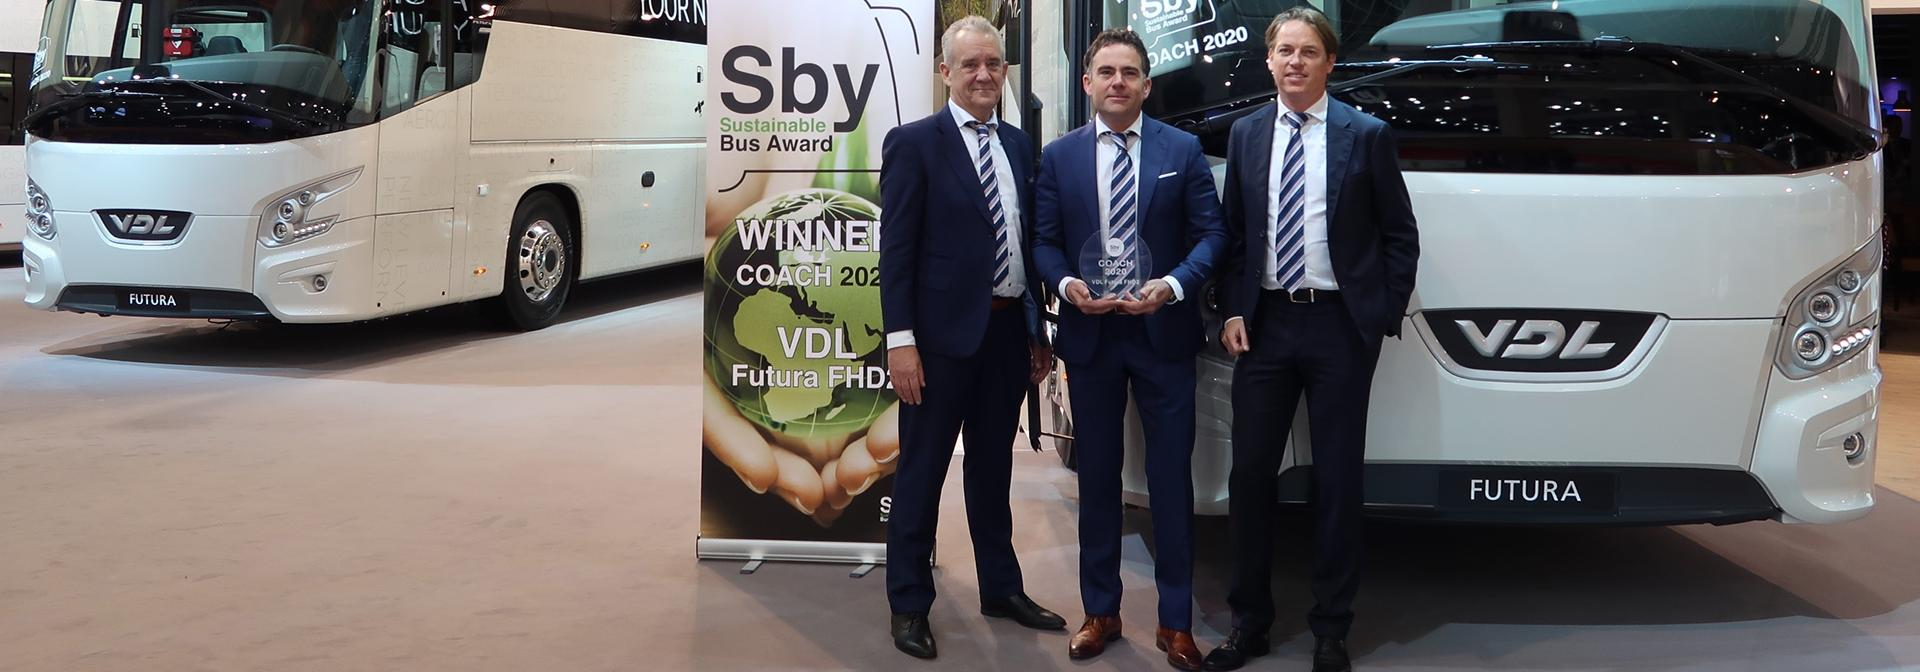 Henk Coppens (CEO), Pieter Gerdingh (Business Manager Coach) and Marcel Jacobs (Commercial Director) from VDL Bus & Coach.